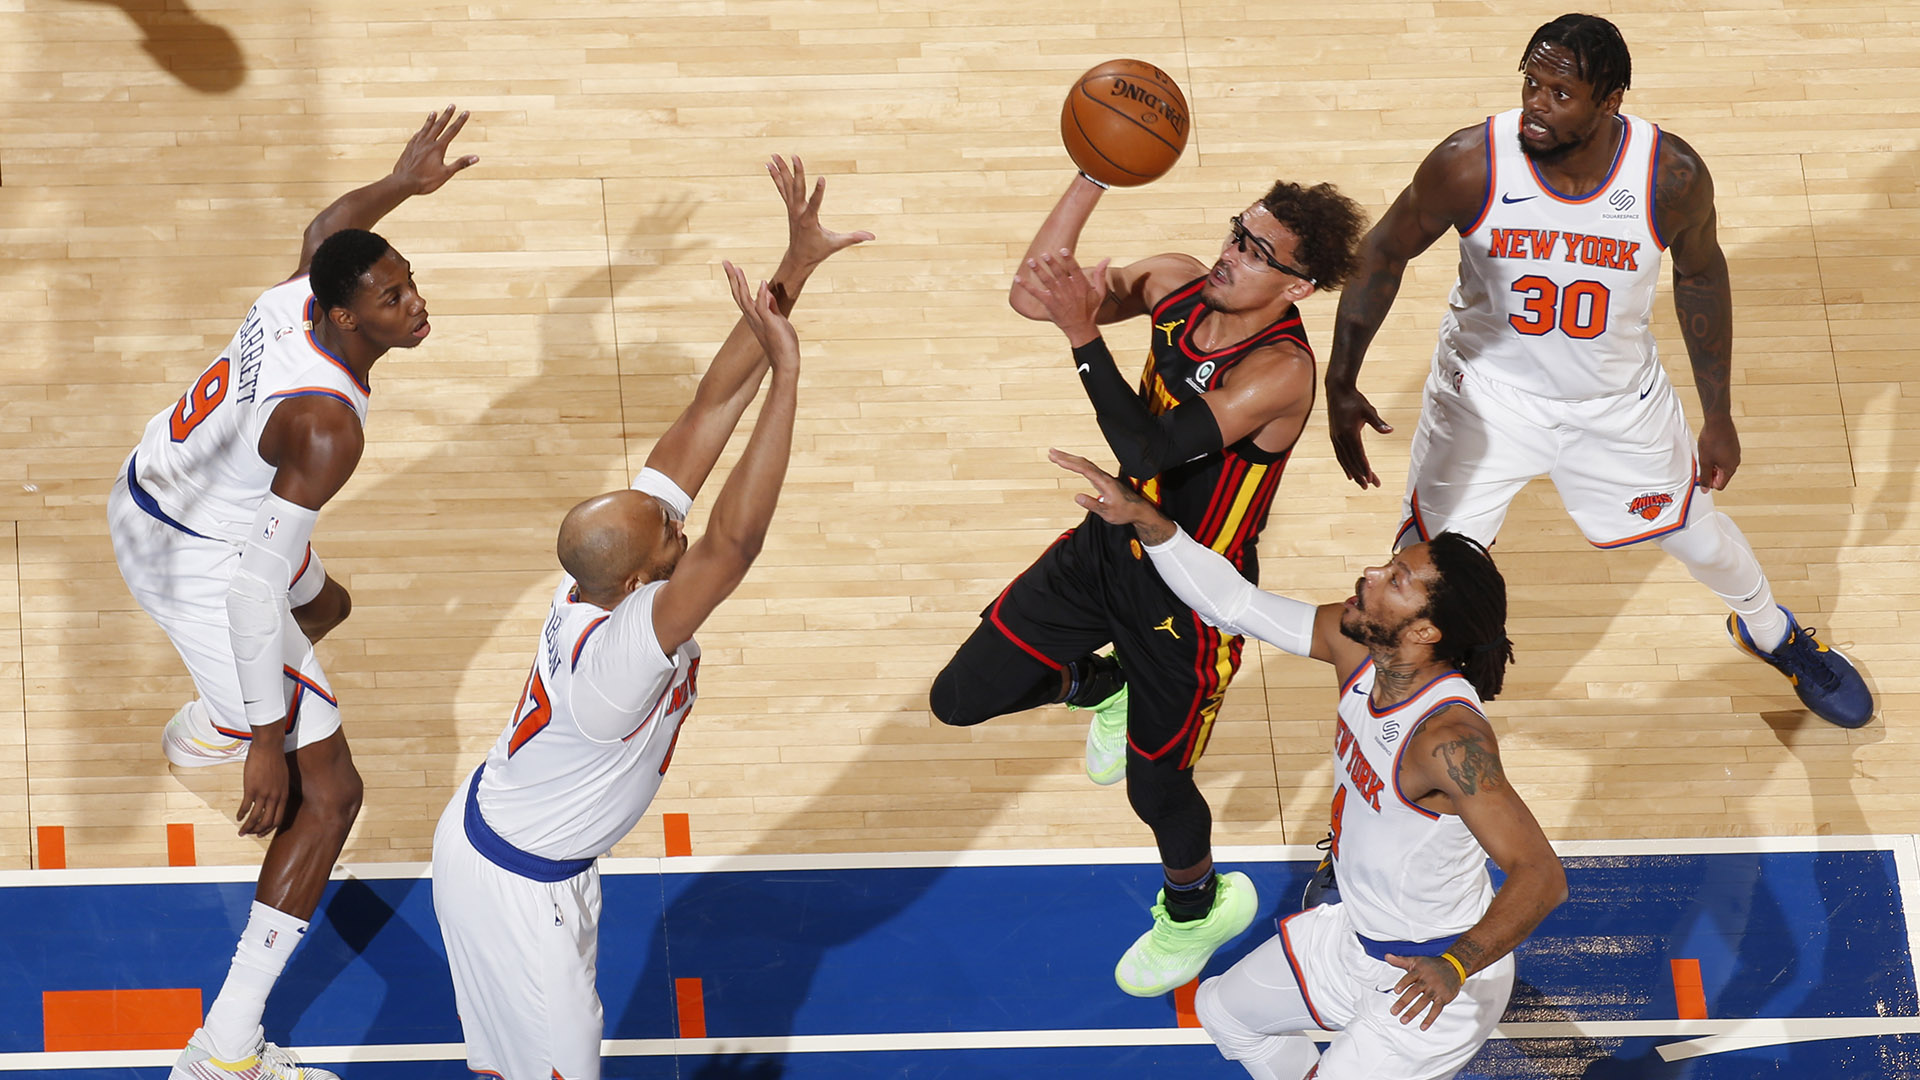 Series preview: Playoff newbies Knicks, Hawks ready to keep late rolls going